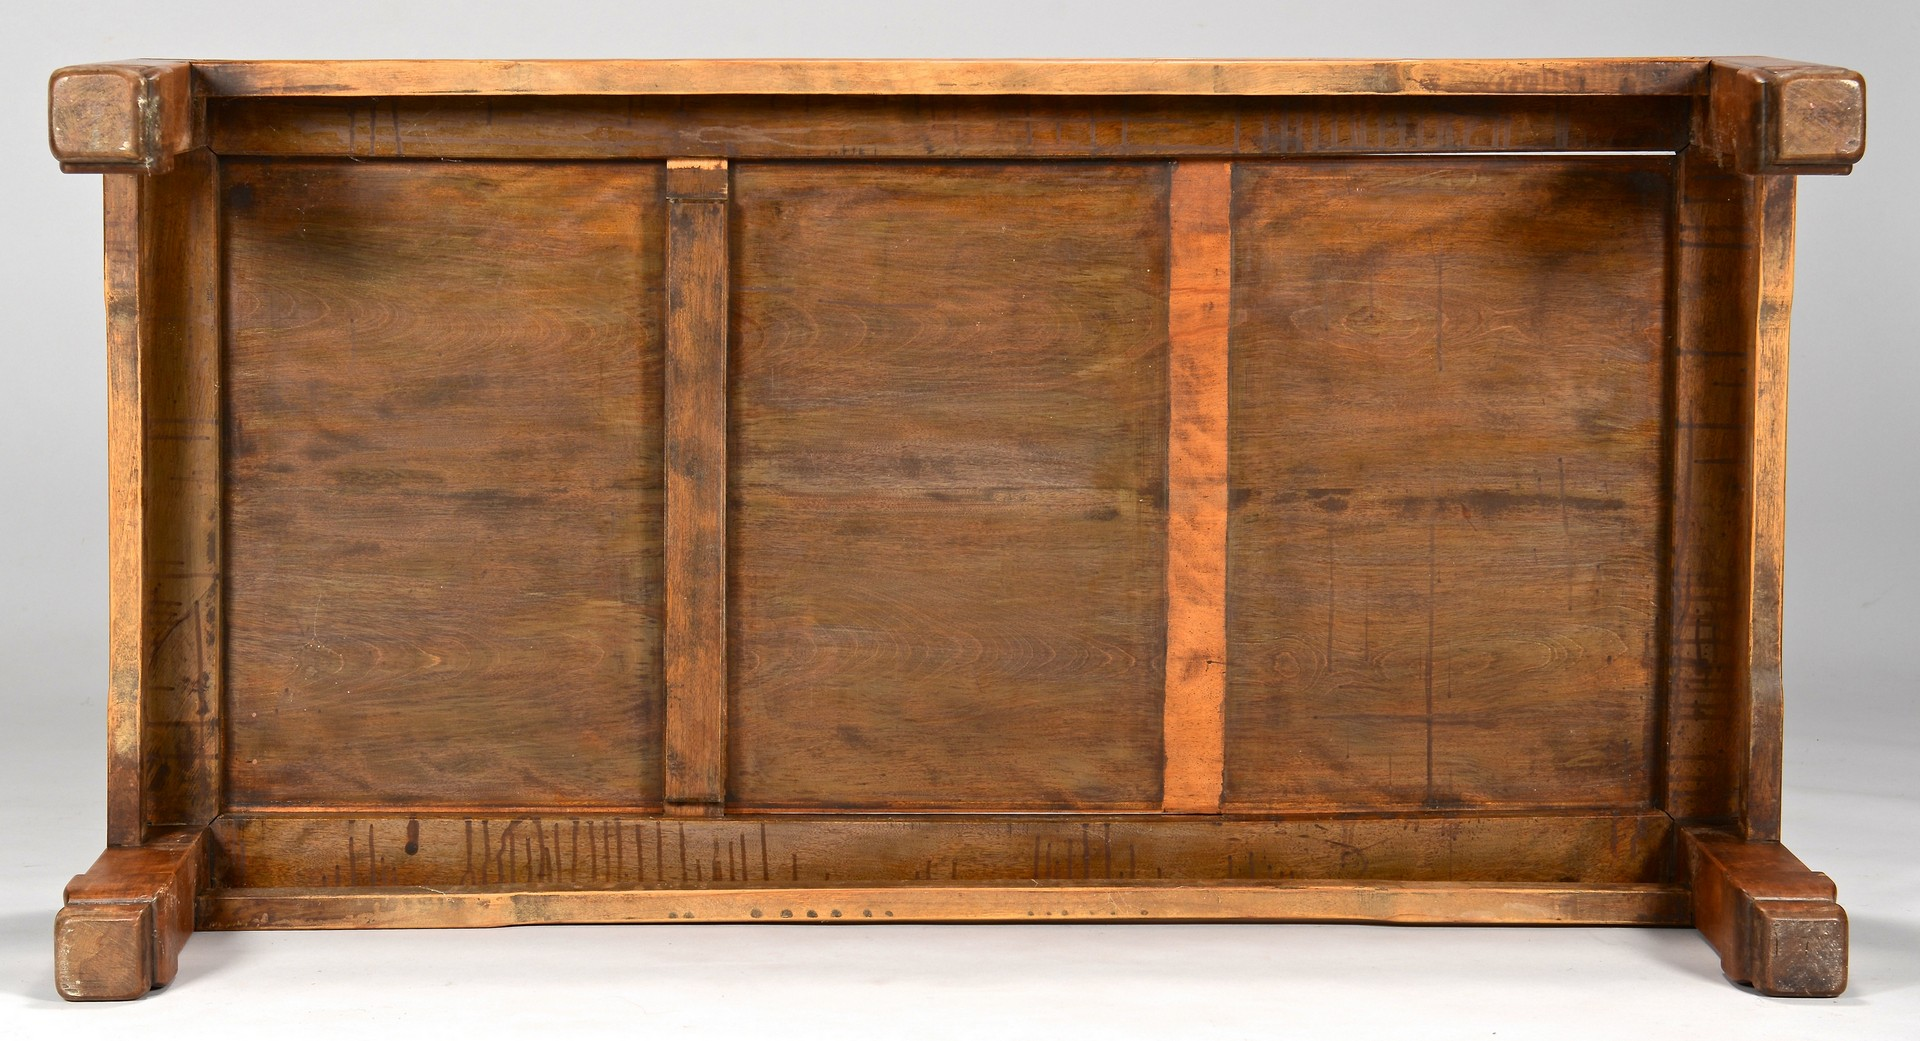 Lot 3832417: Chinese Hardwood Low Table